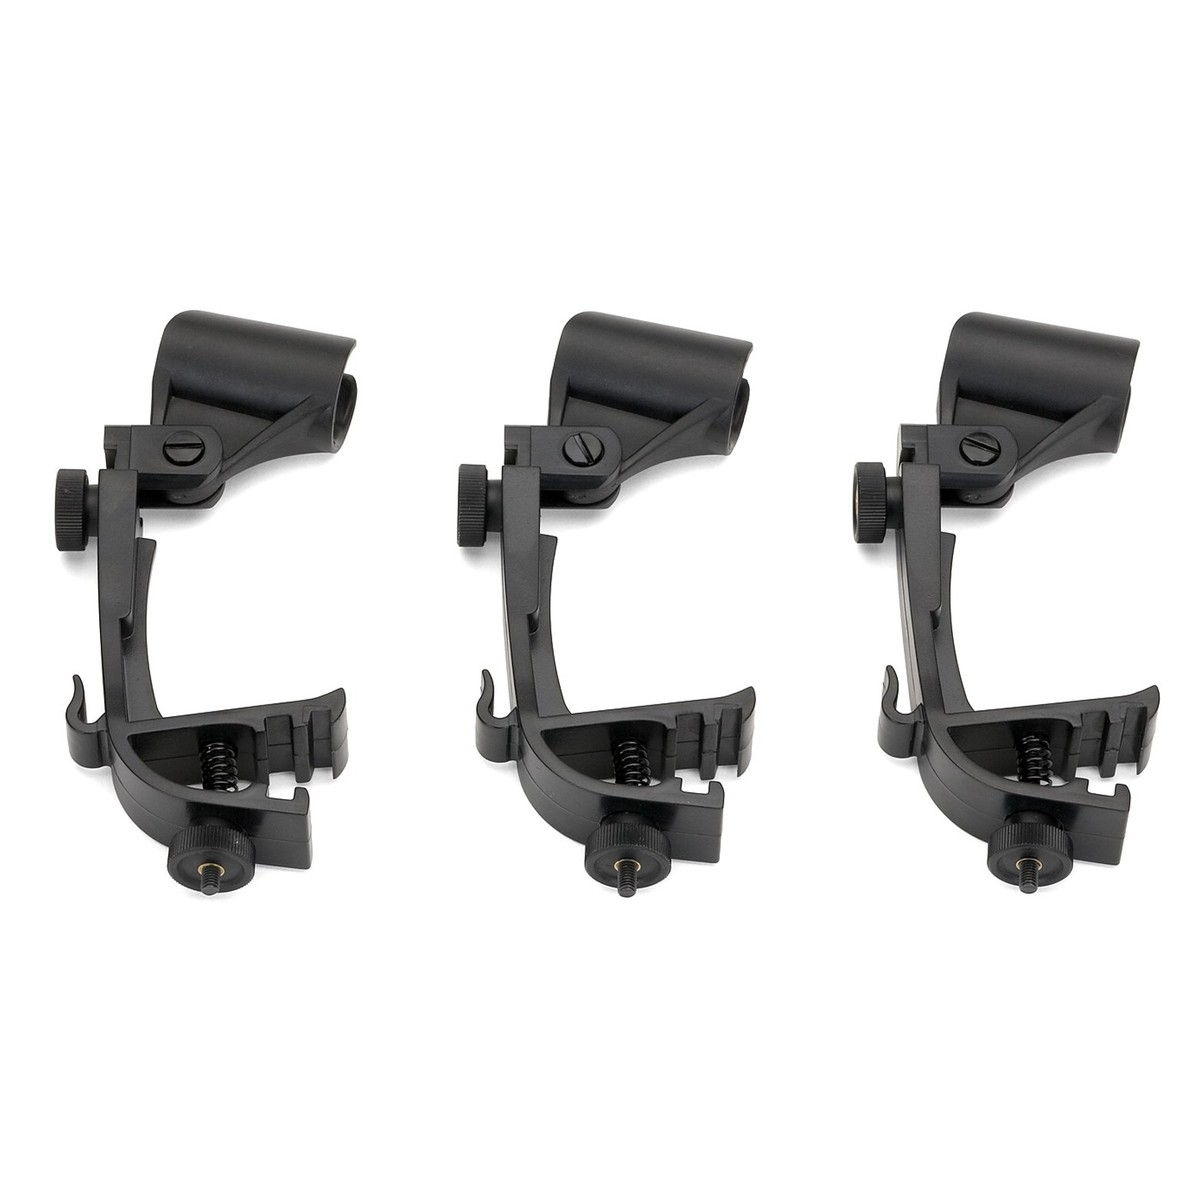 samson dmc100 3 piece drum microphone clip set at gear4music. Black Bedroom Furniture Sets. Home Design Ideas